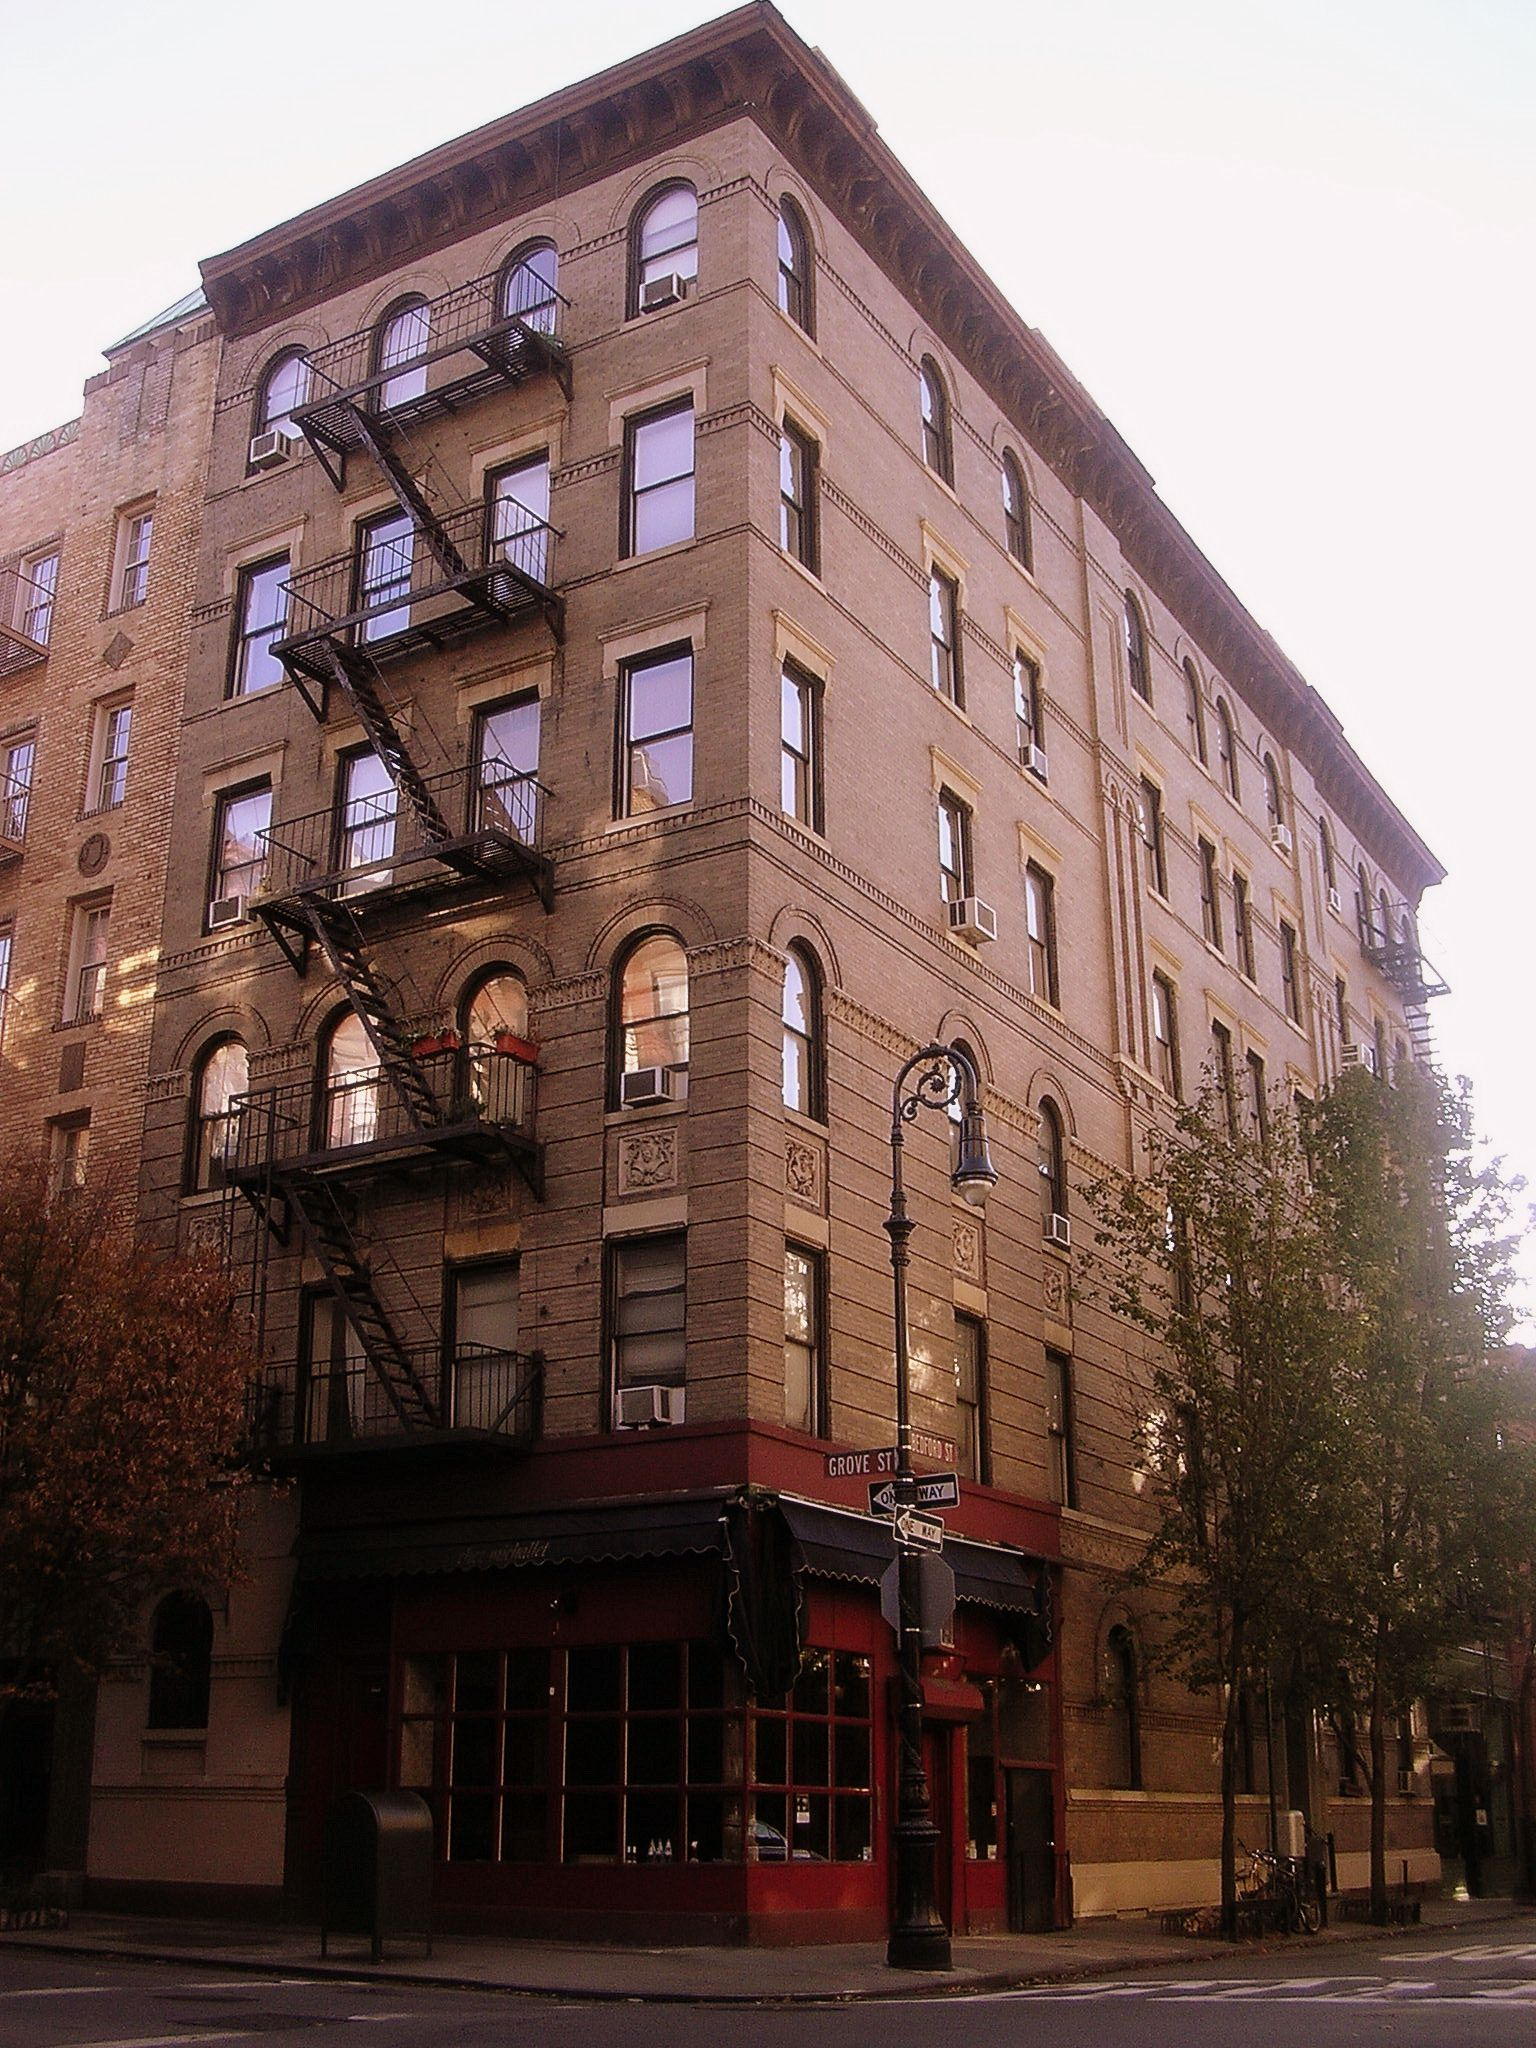 The Actual Friends Apartment Building